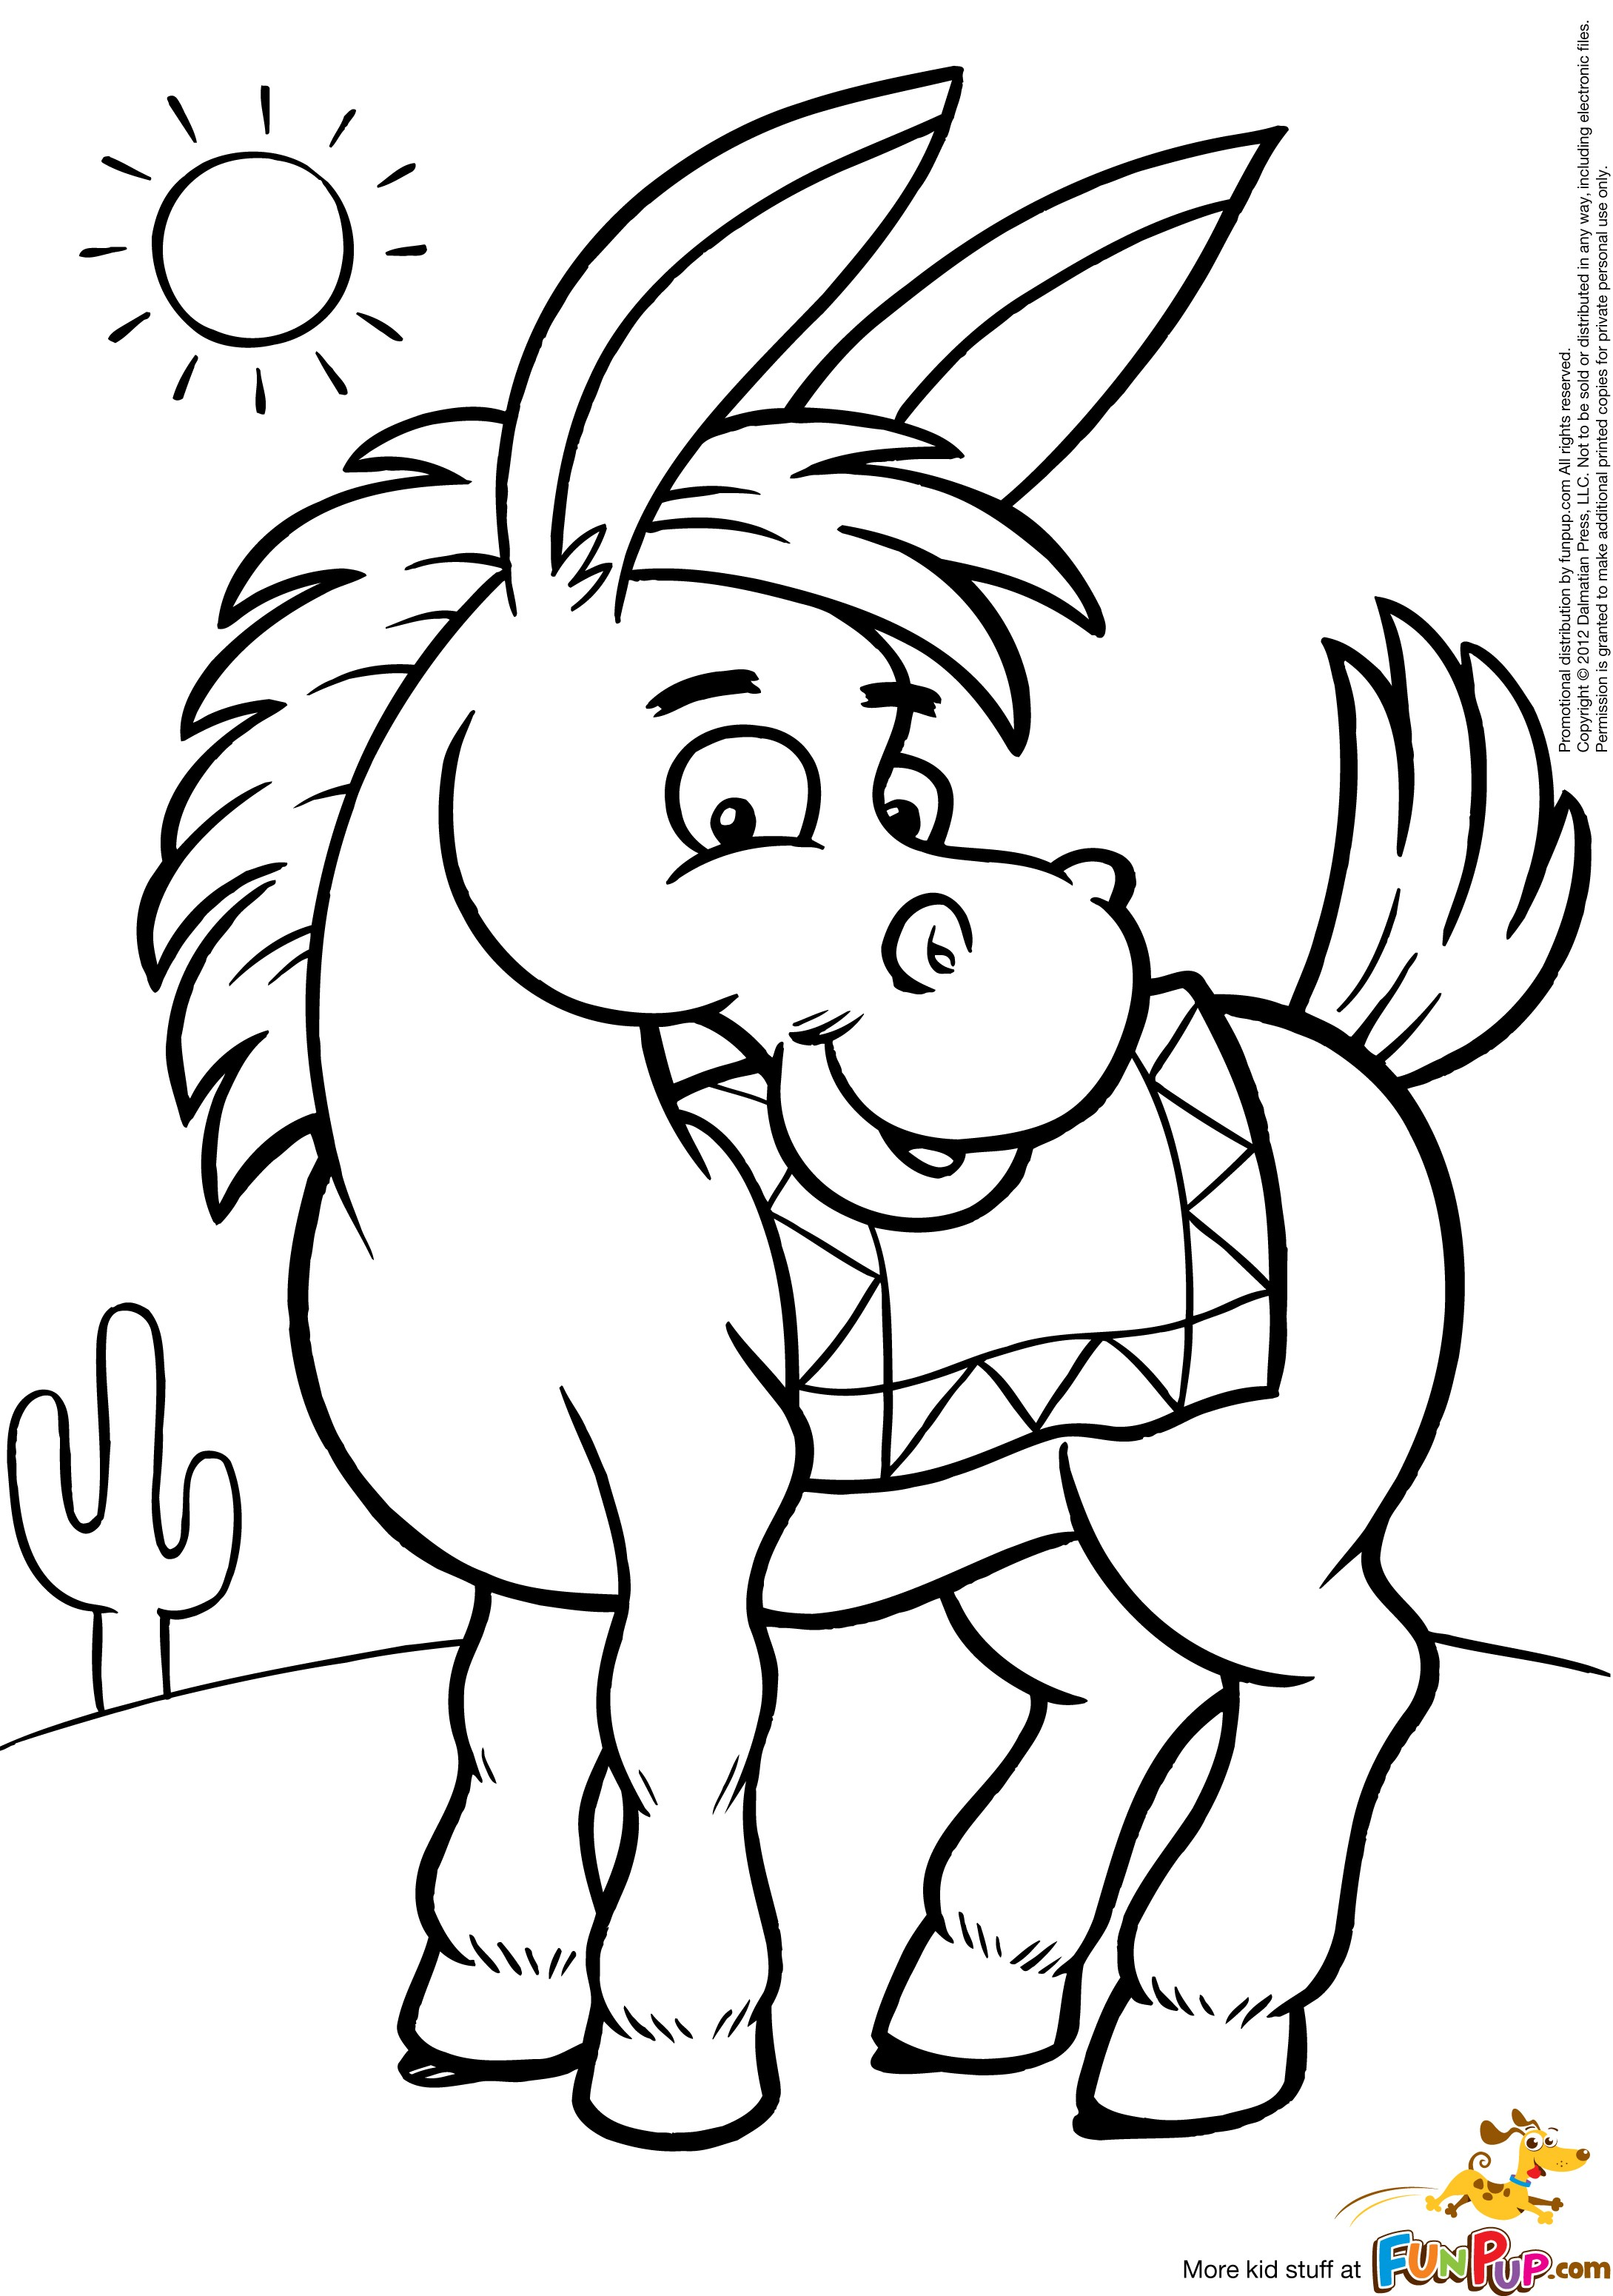 coloring pages free zebra coloring pages free printable kids coloring pages free pages coloring